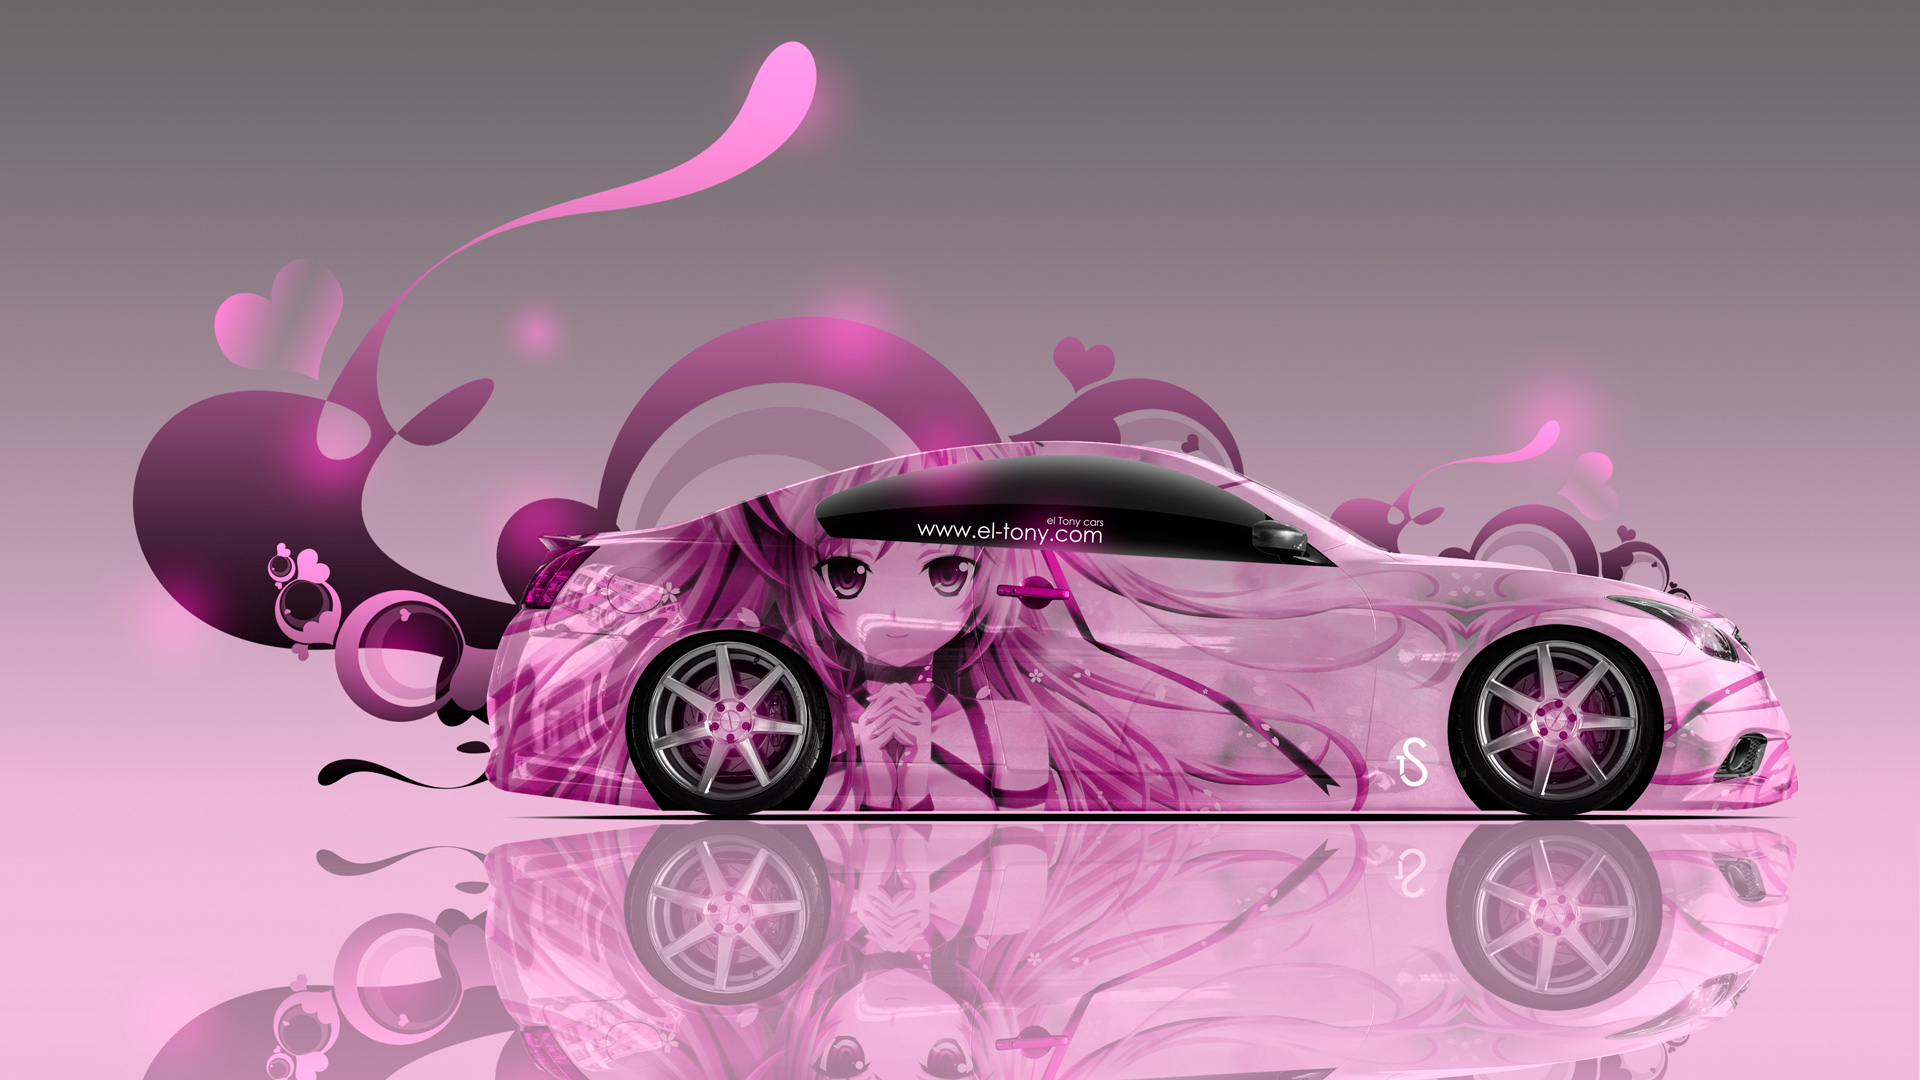 Infiniti-G37-Side-Anime-Aerography-Girl-Car-2014-Pink-Soft-Image-HD-Wallpapers-design-by-Tony-Kokhan-[www.el-tony.com]